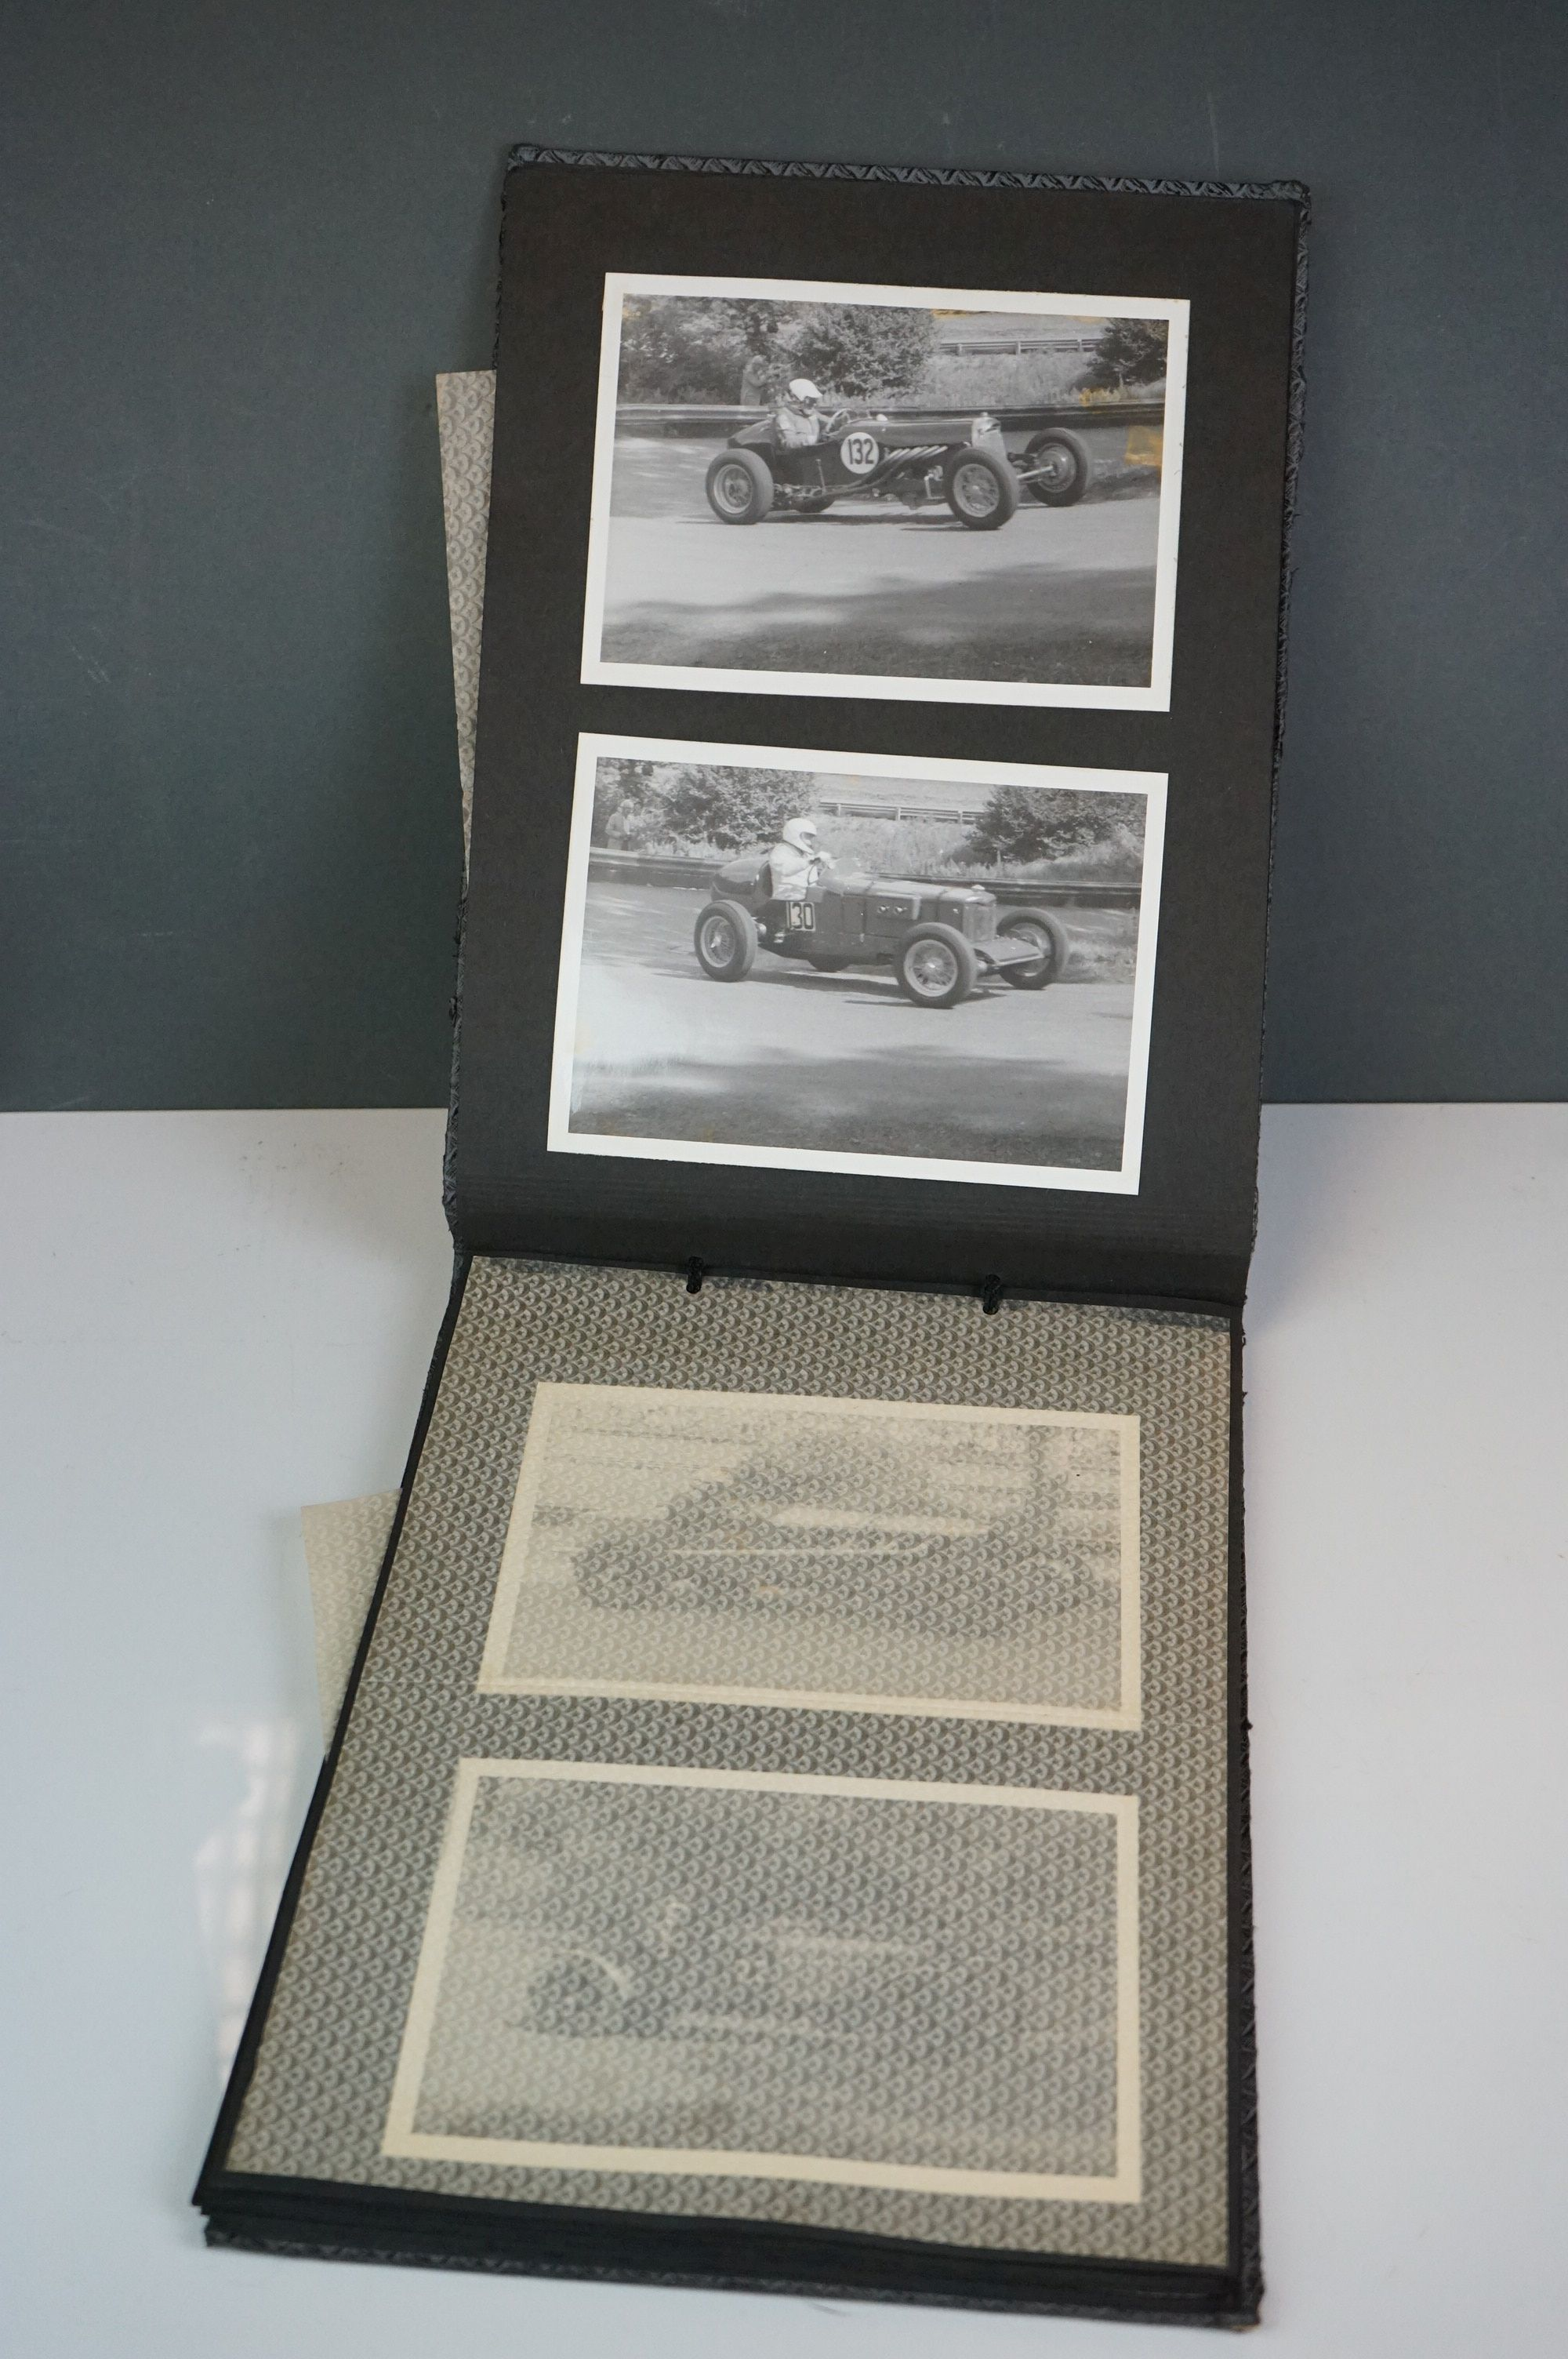 A vintage photograph album with vintage black and white photos of motor racing cars.